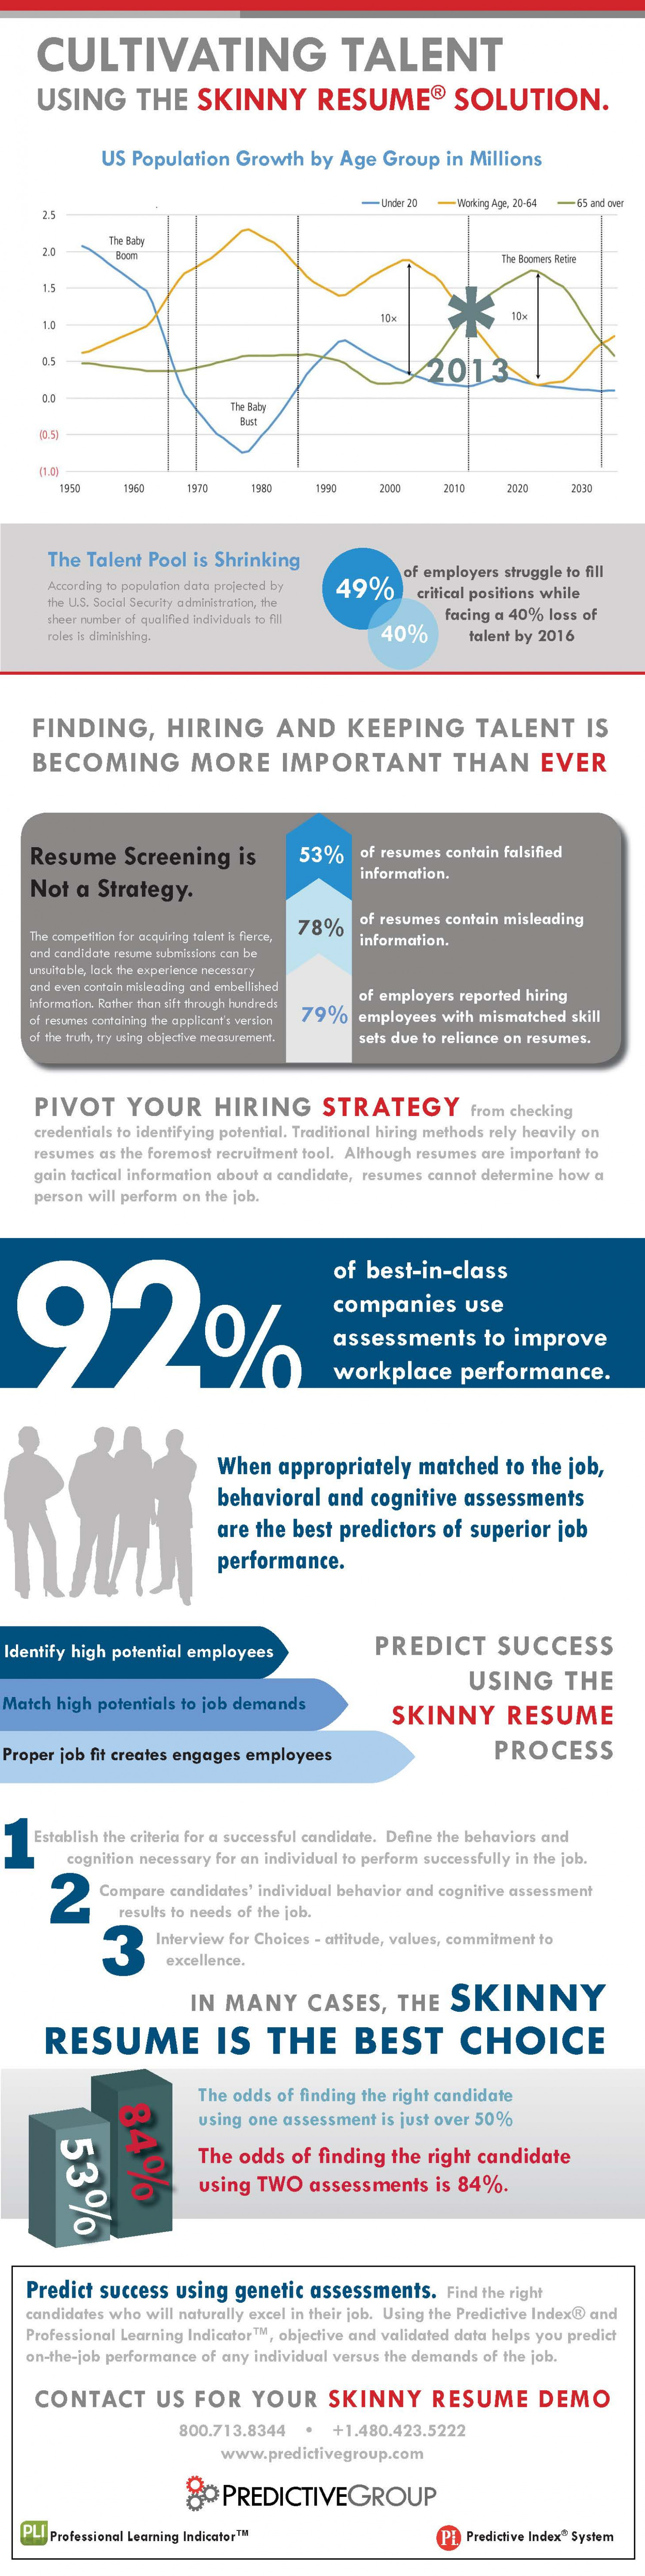 Cultivating Talent Infographic